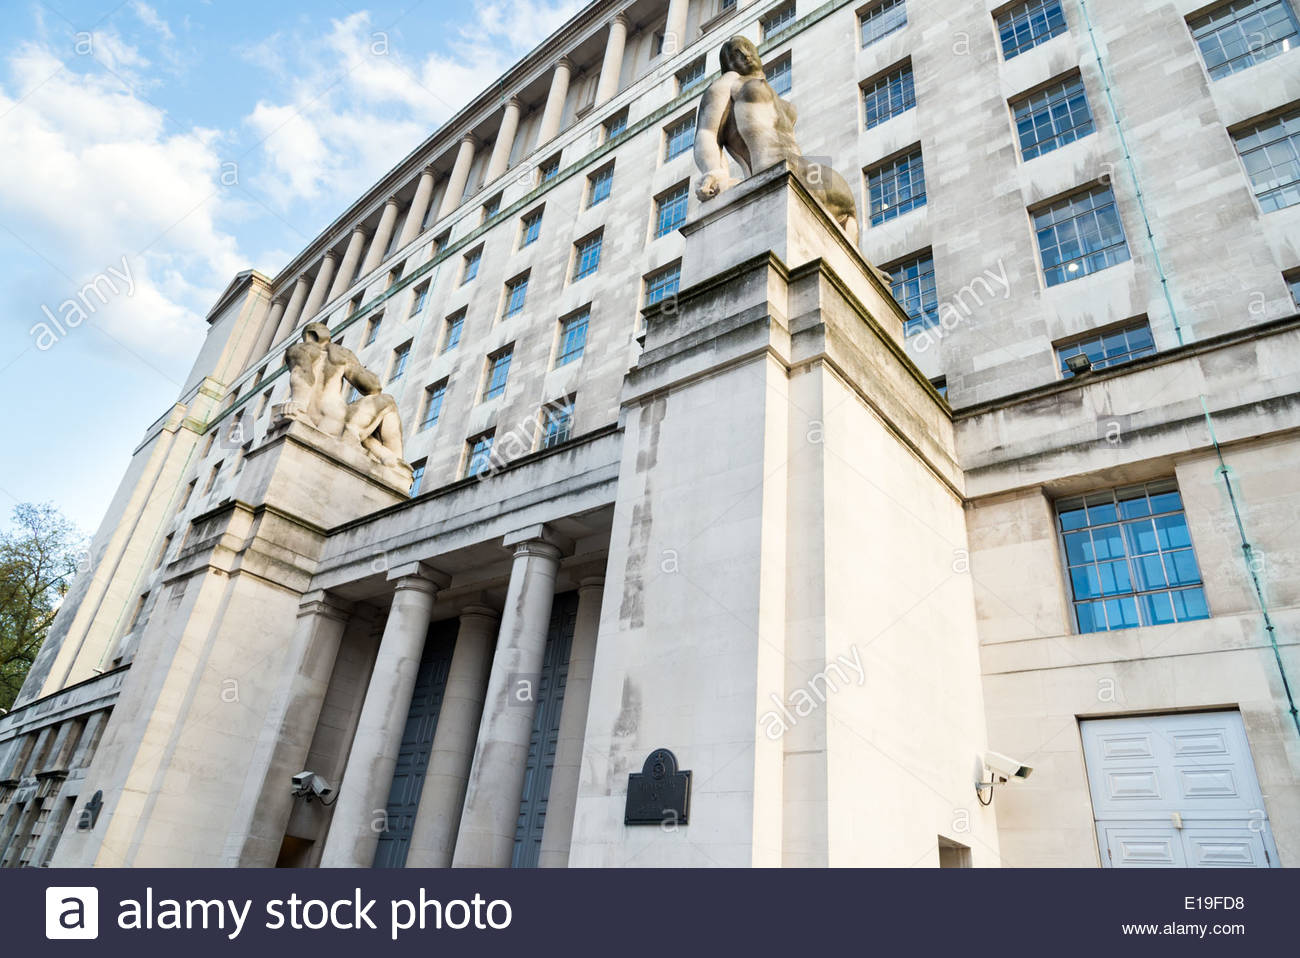 Ministry of Defence building, Whitehall, London, England, UK - Stock Image